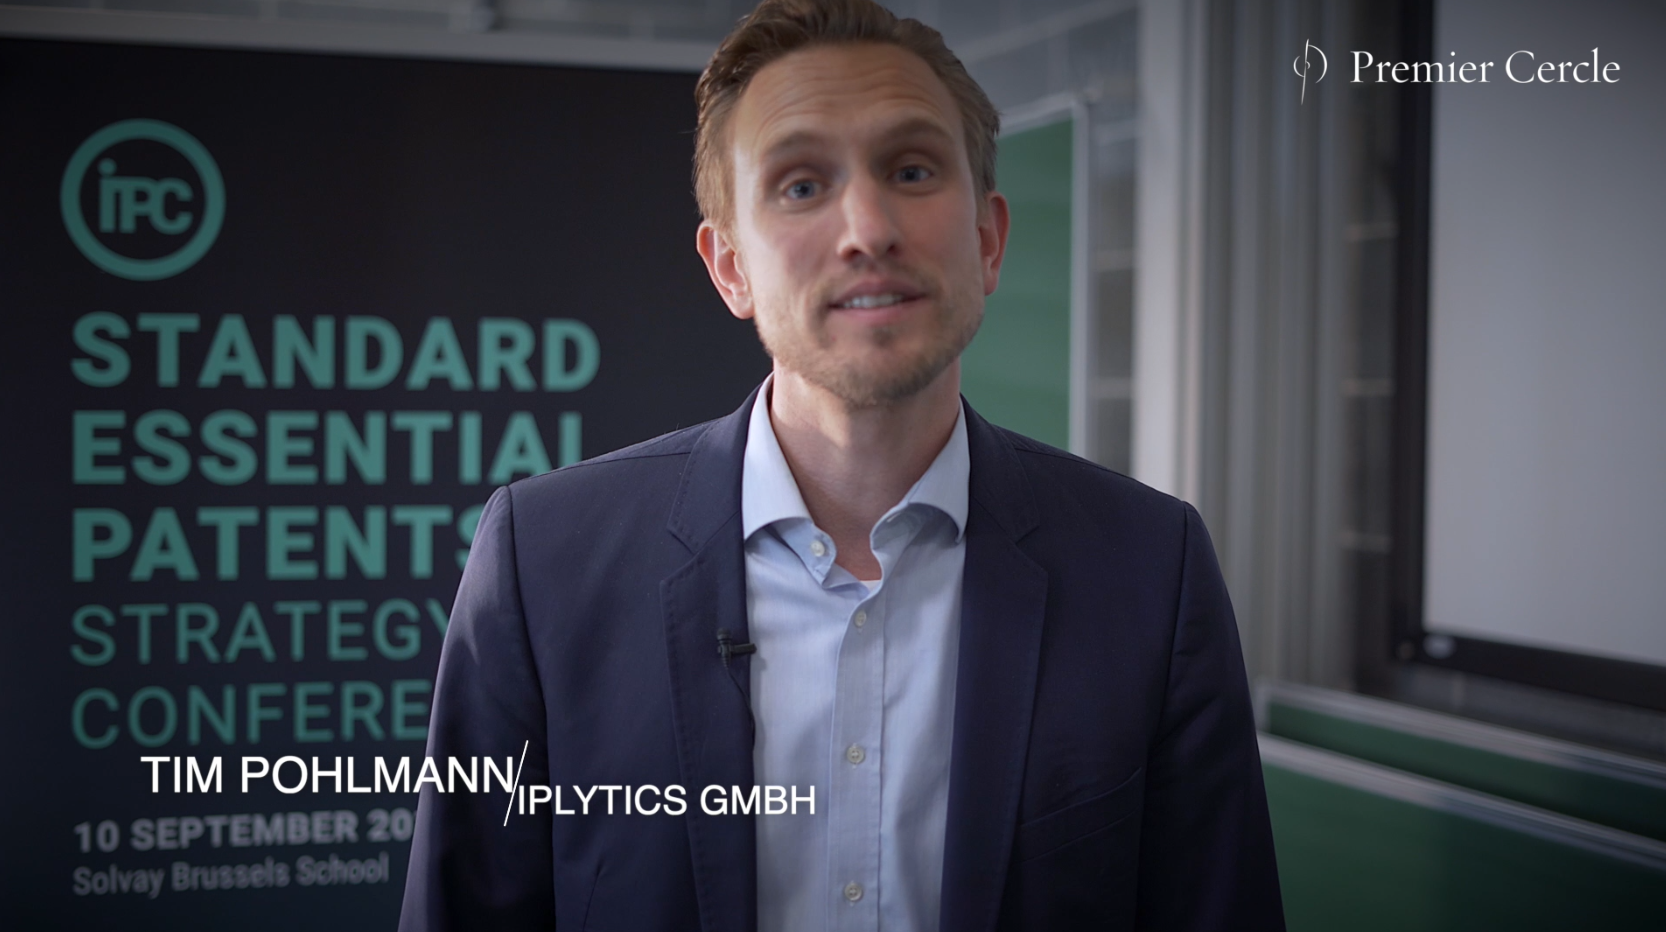 Tim Pohlmann Interviewed by Premier Cercle